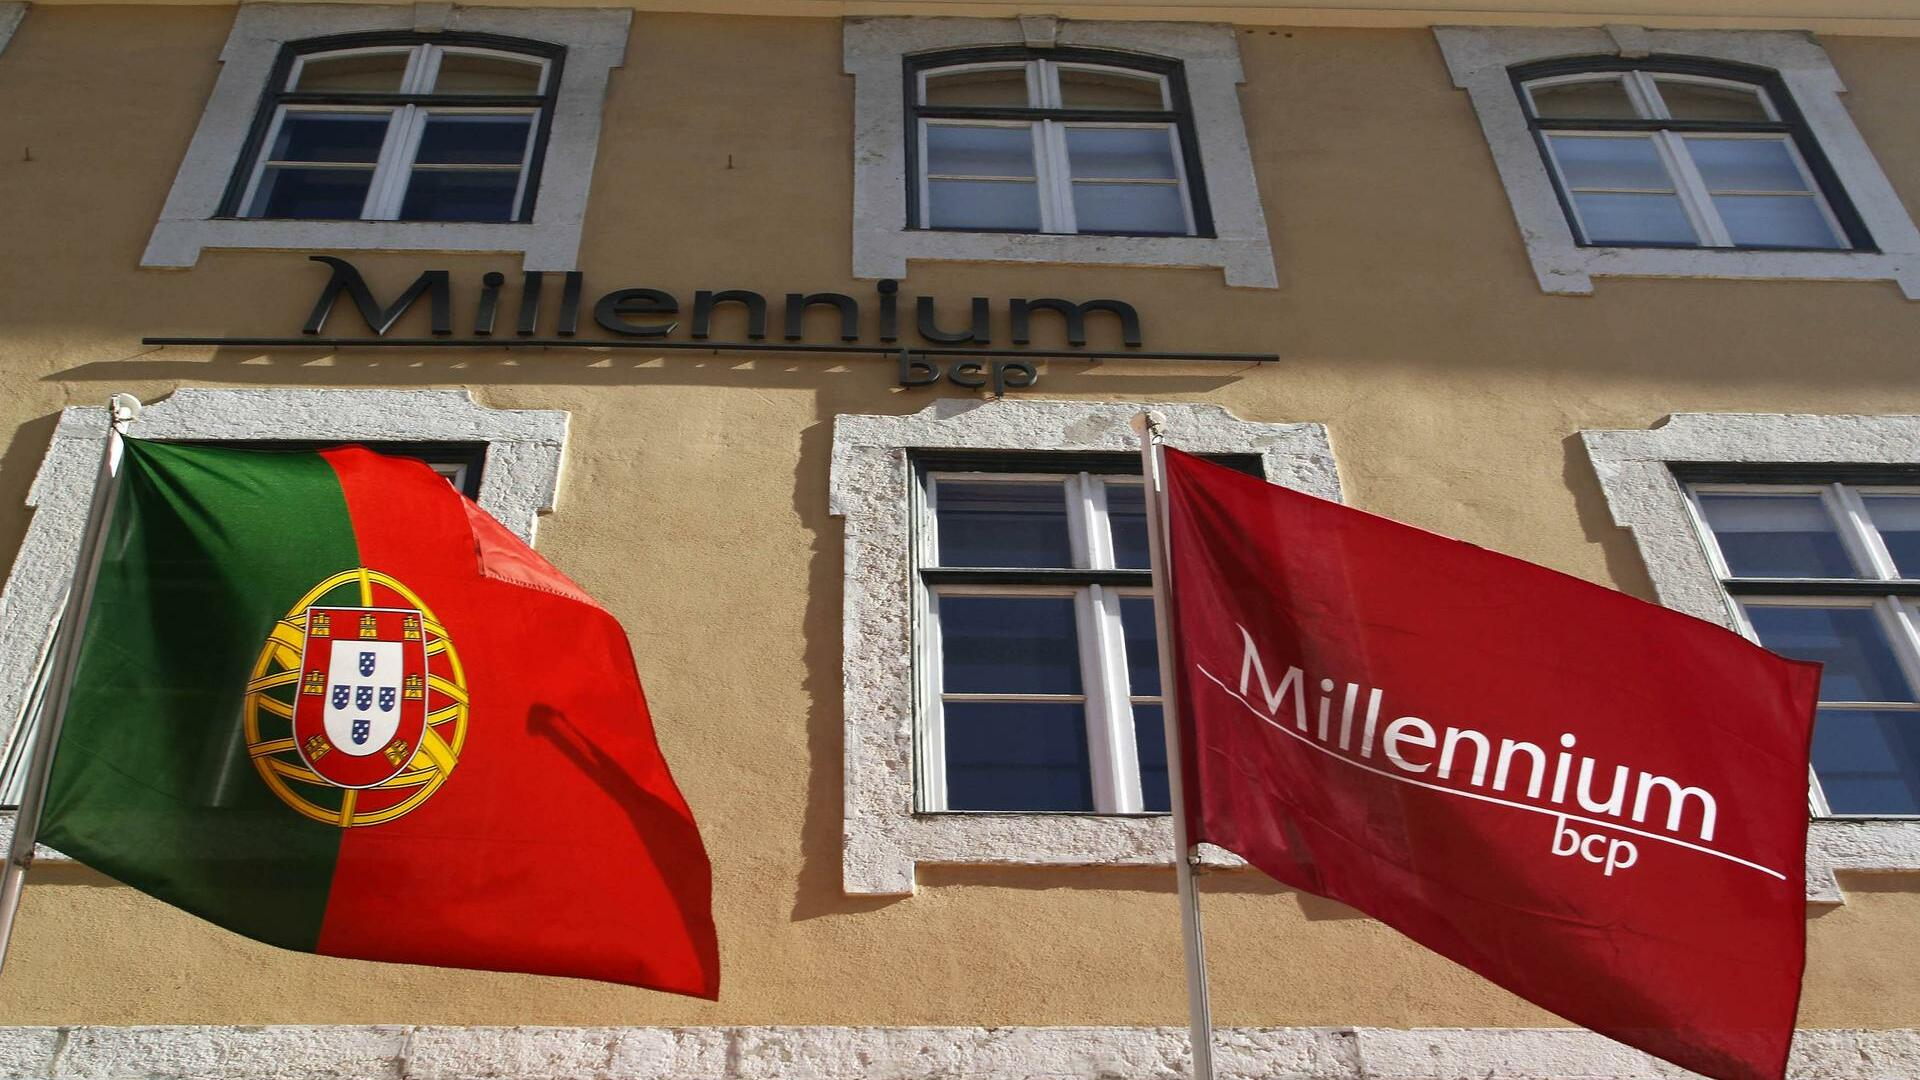 The Millennium BCP flag and the Portugal's flag are seen at the bank headquarters in Lisbon Quelle: REUTERS